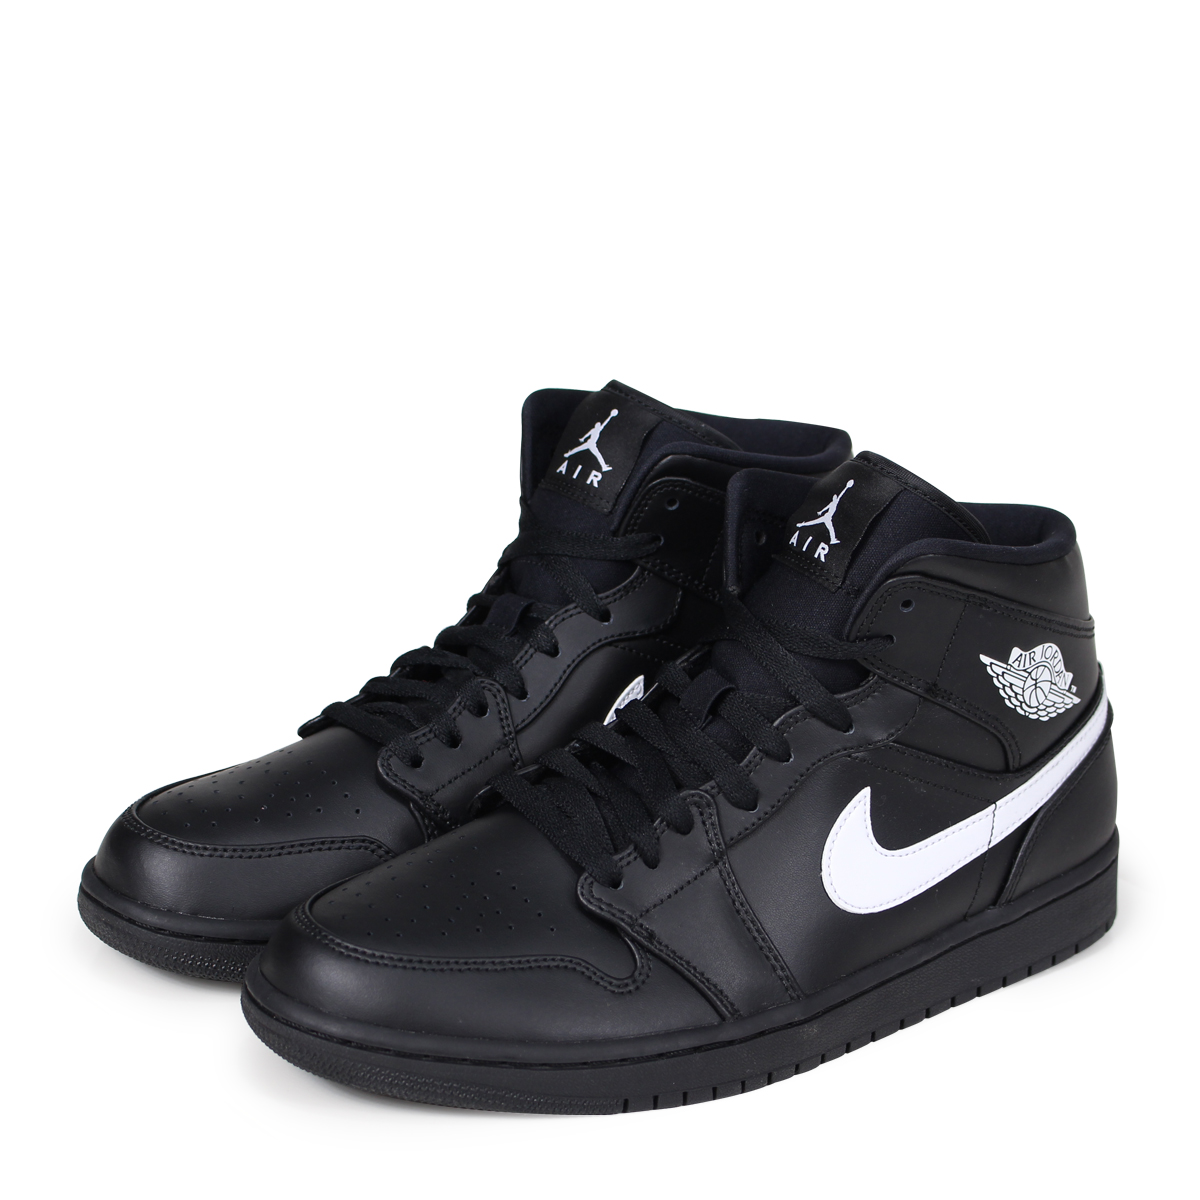 super popular 1085e 2a59e NIKE AIR JORDAN 1 MID Nike Air Jordan 1 sneakers men 554,724-049 black  [4/13 Shinnyu load] [184]